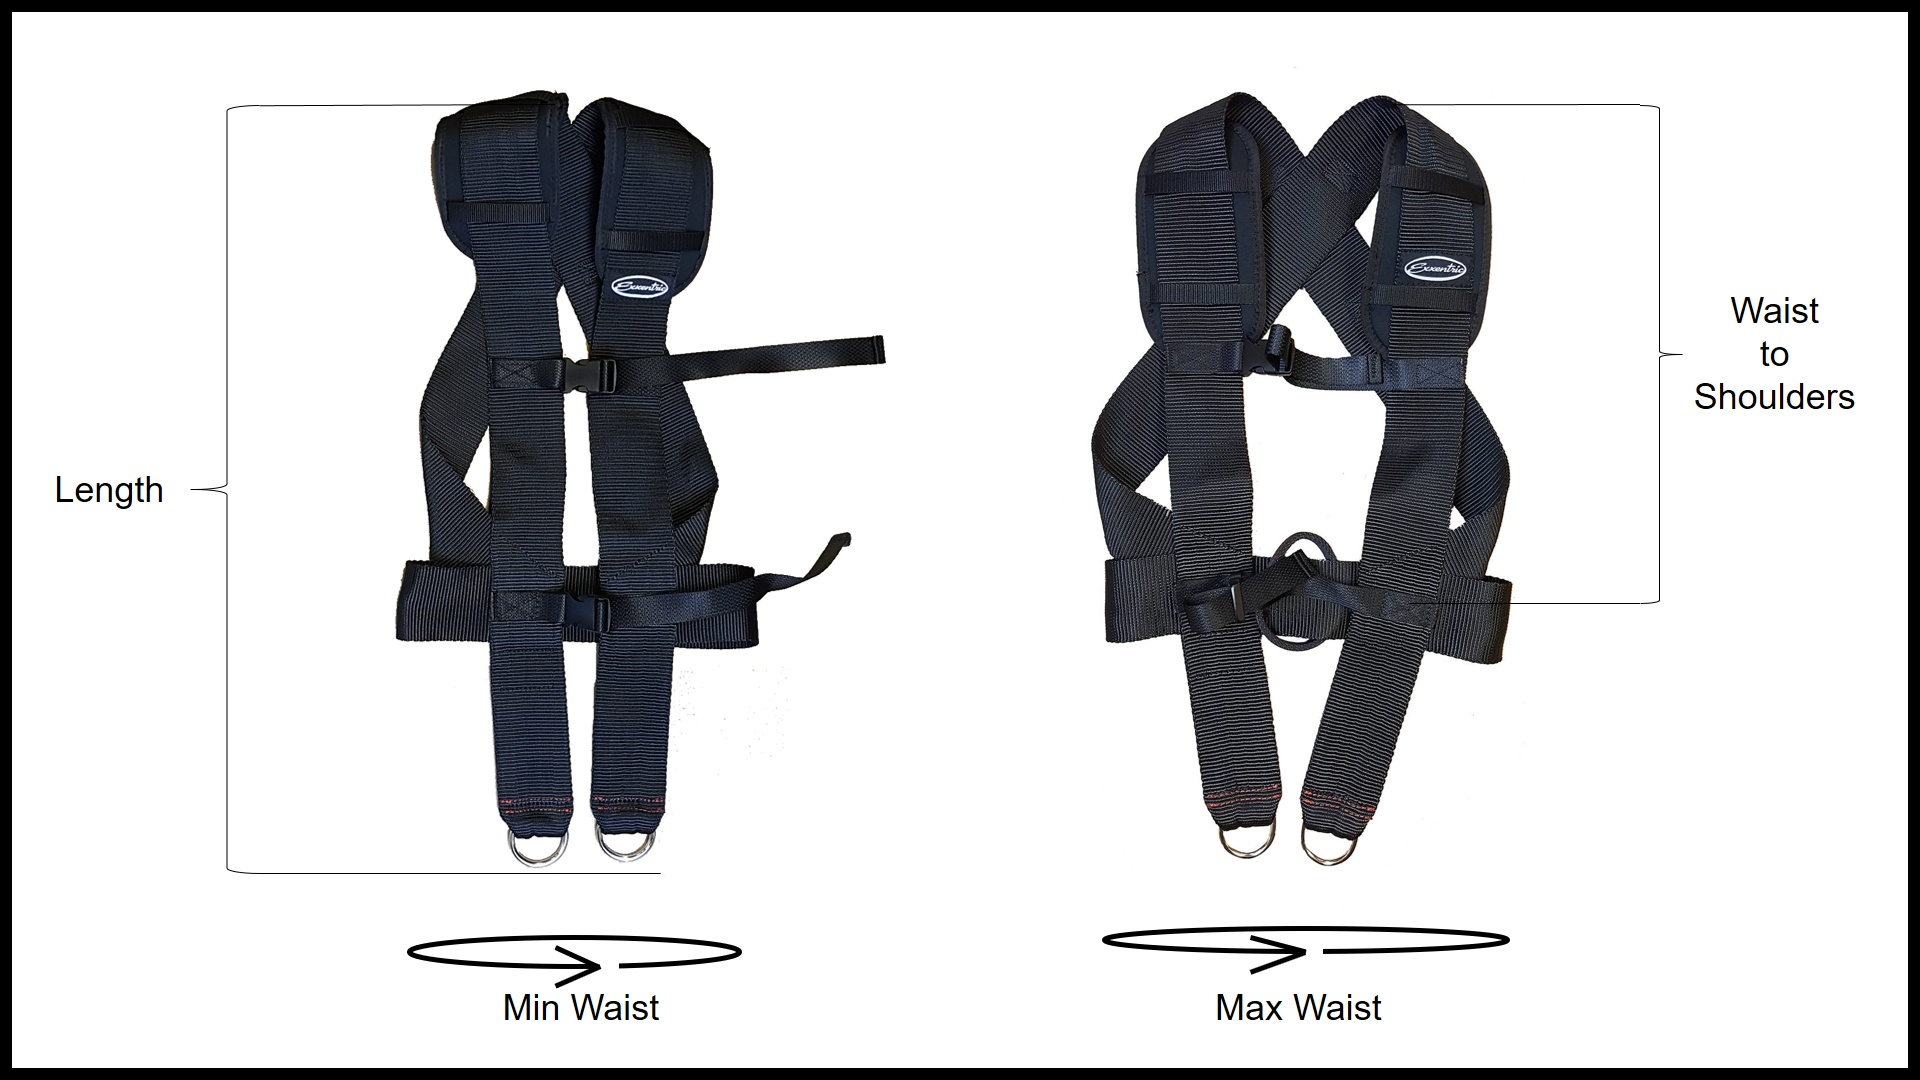 Harness size guide explanation